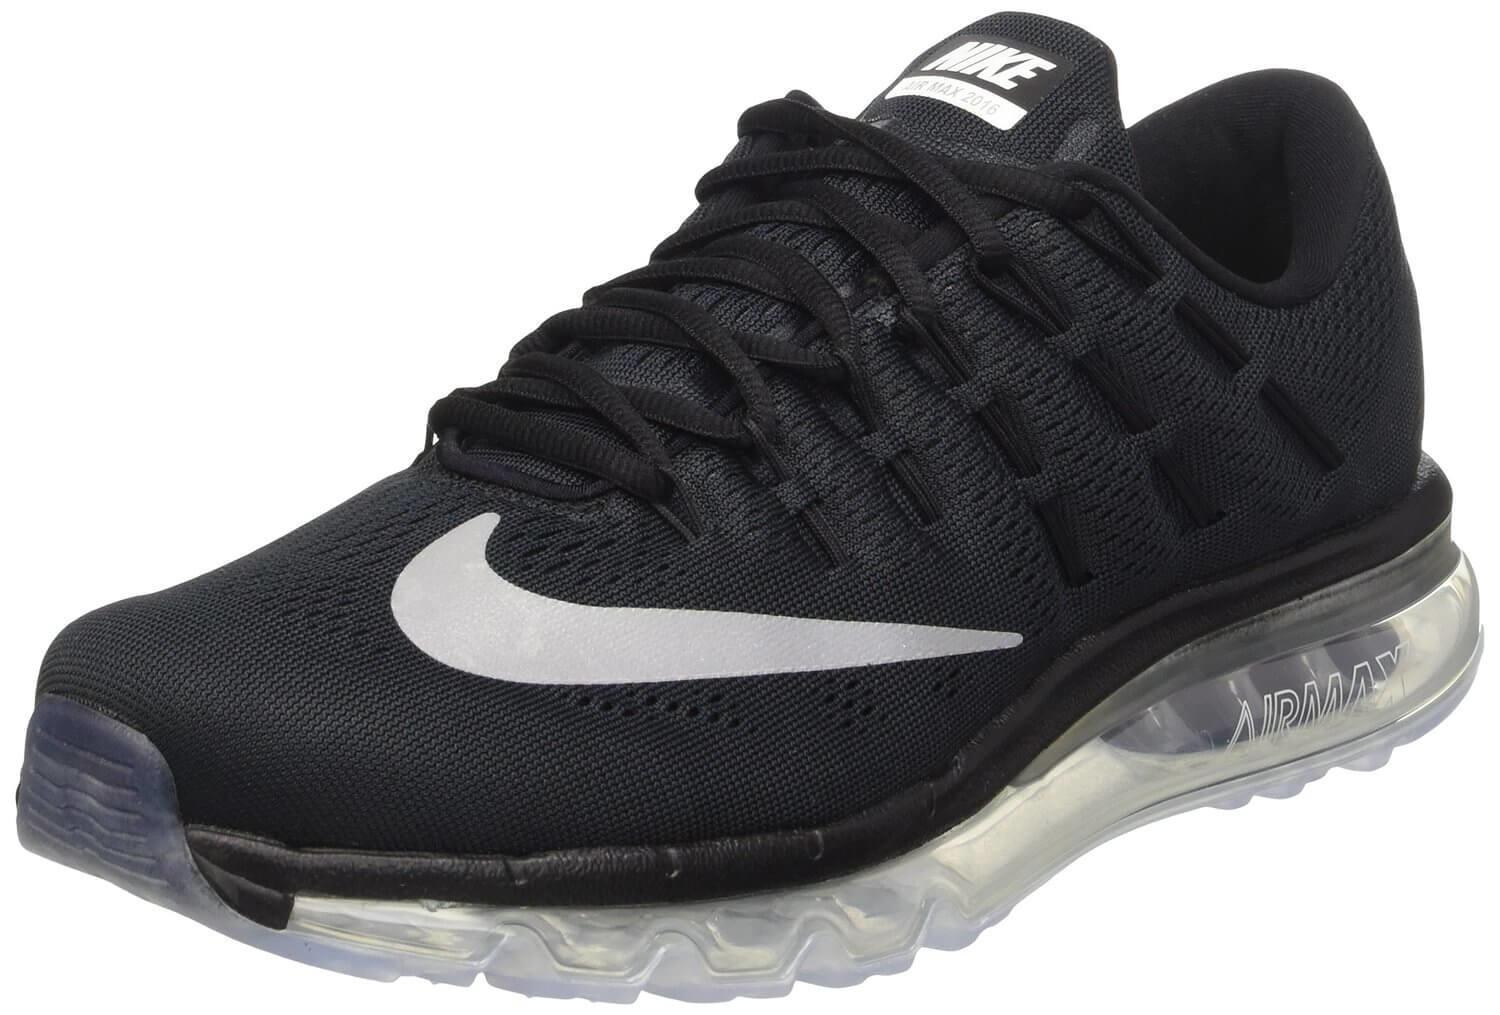 160a4bc90a With a simplistic design, the Nike Air Max 2016 is still a very stylish shoe  ...